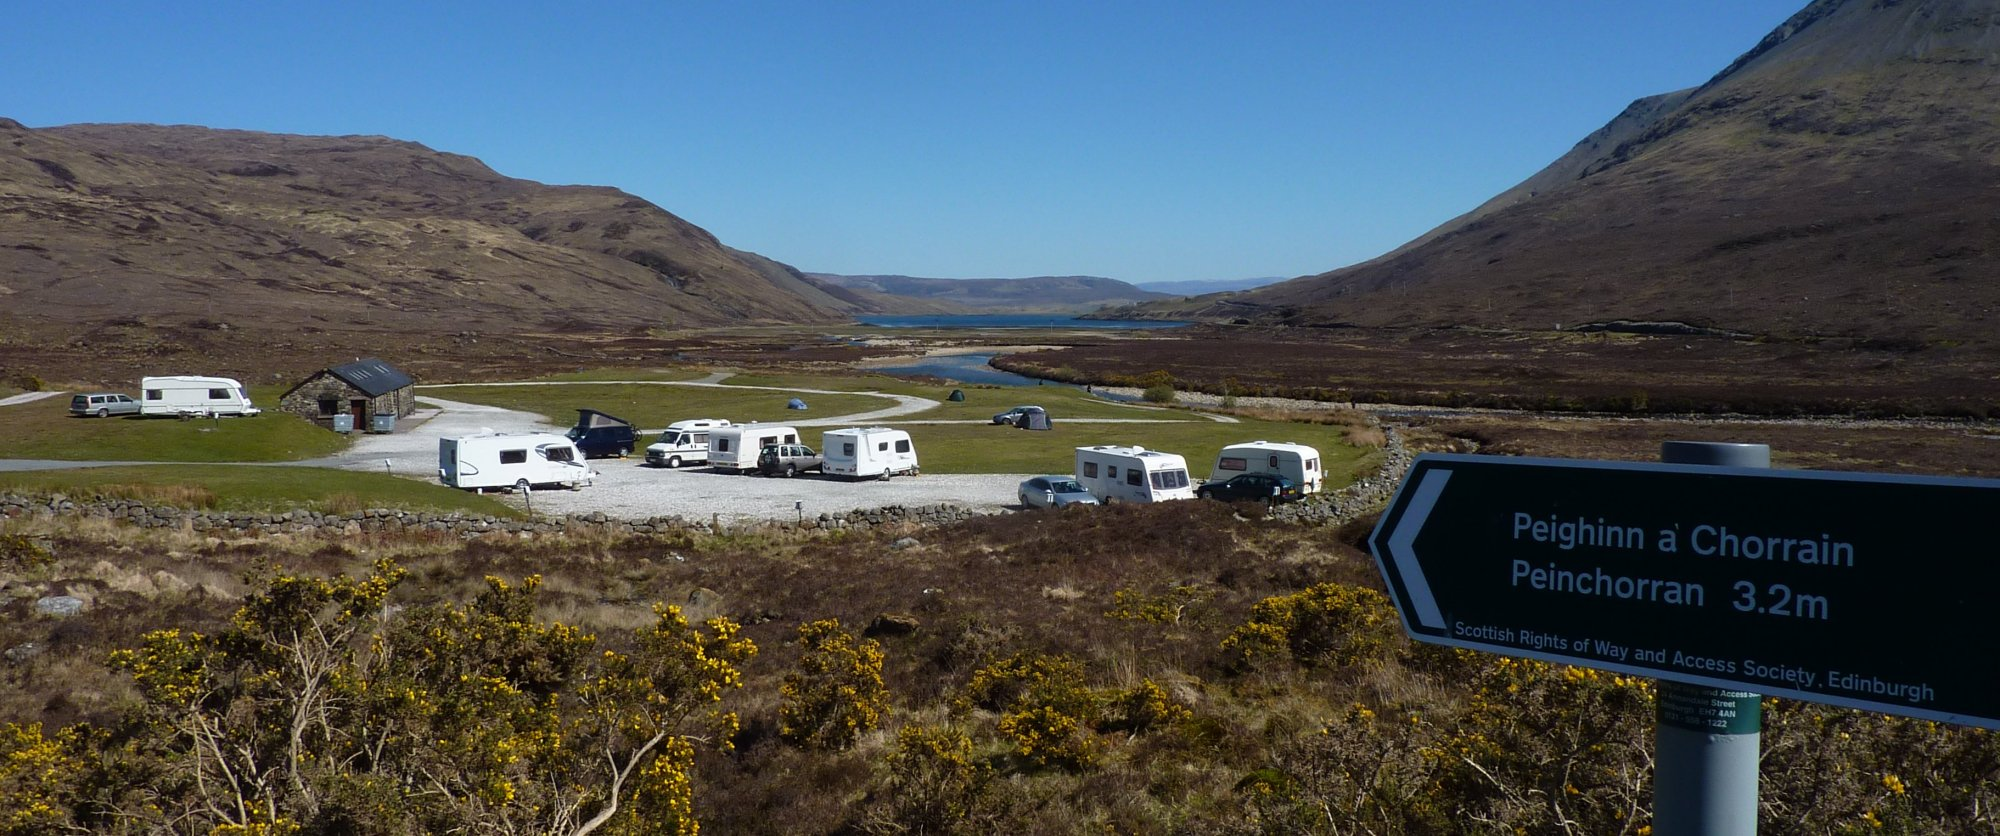 The campsite at Sligachan Hotel, a tad exposed for my liking